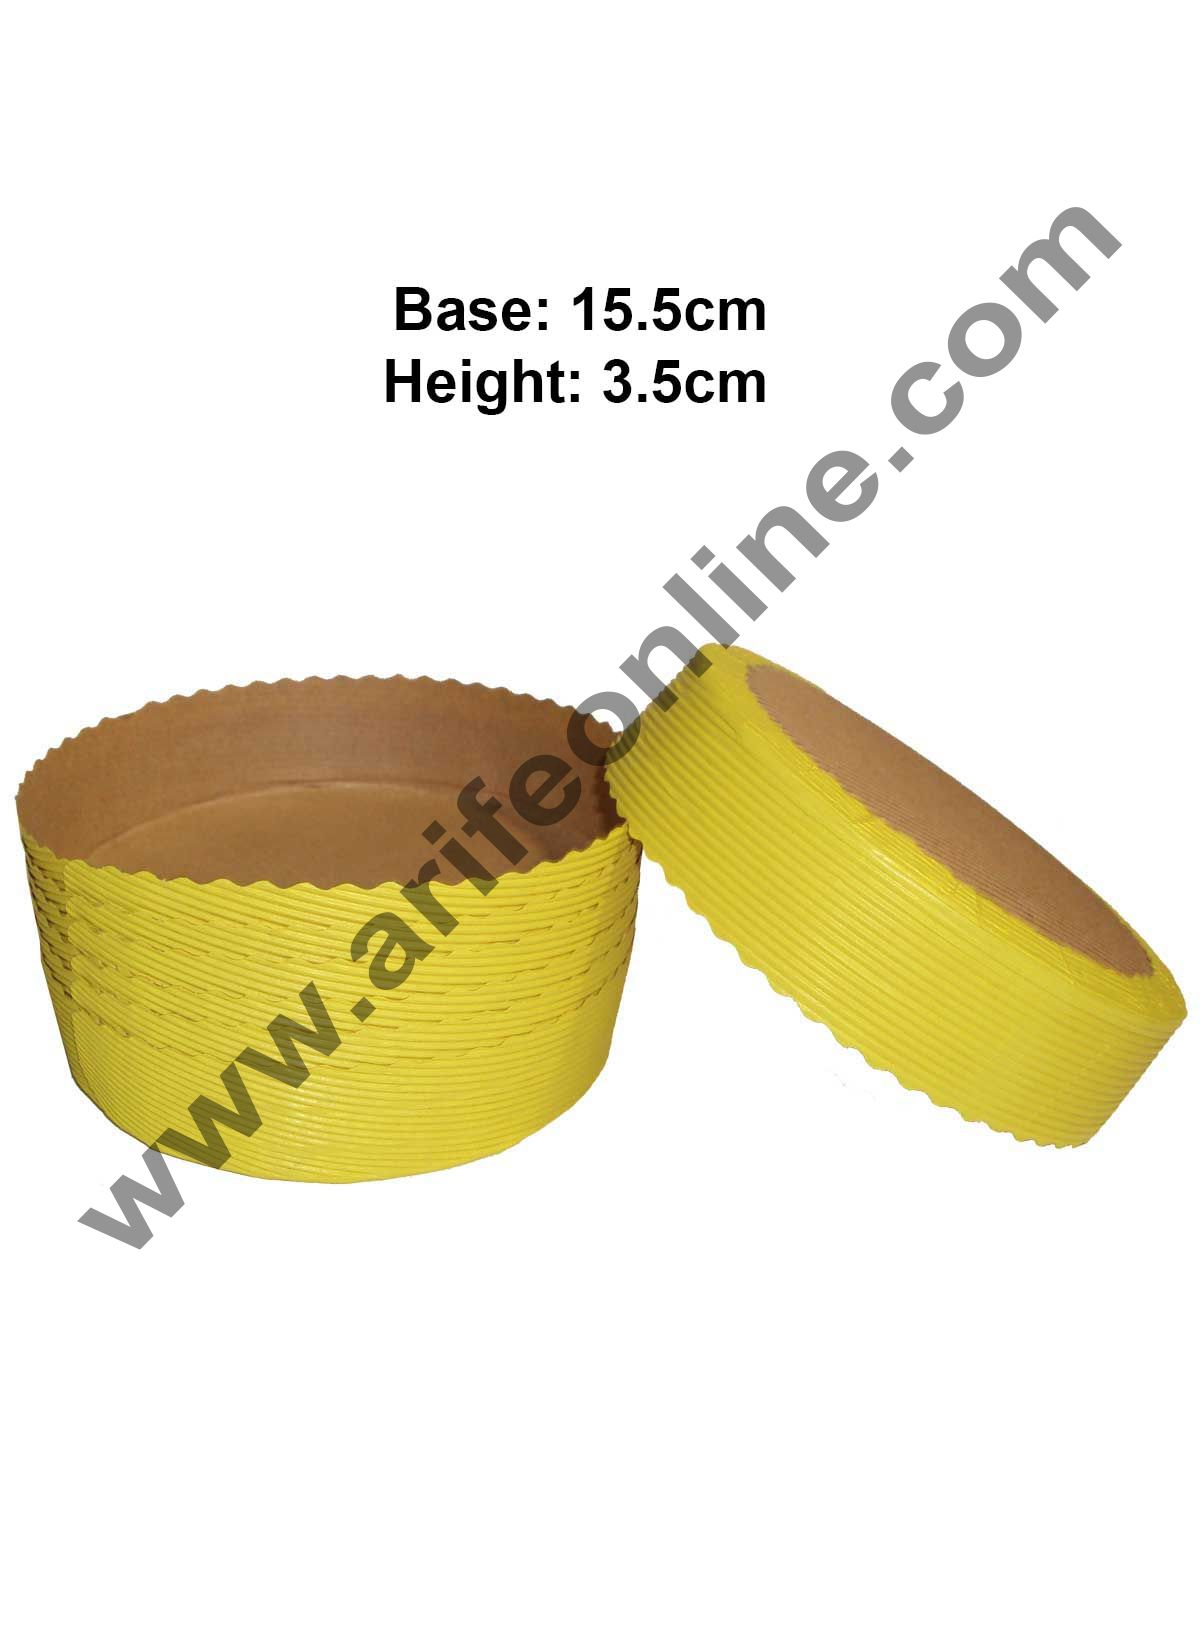 Novacart Bake & Serve Paper Baking Mould By Cake Decor - Round Cake Mould Yellow 10 Pcs